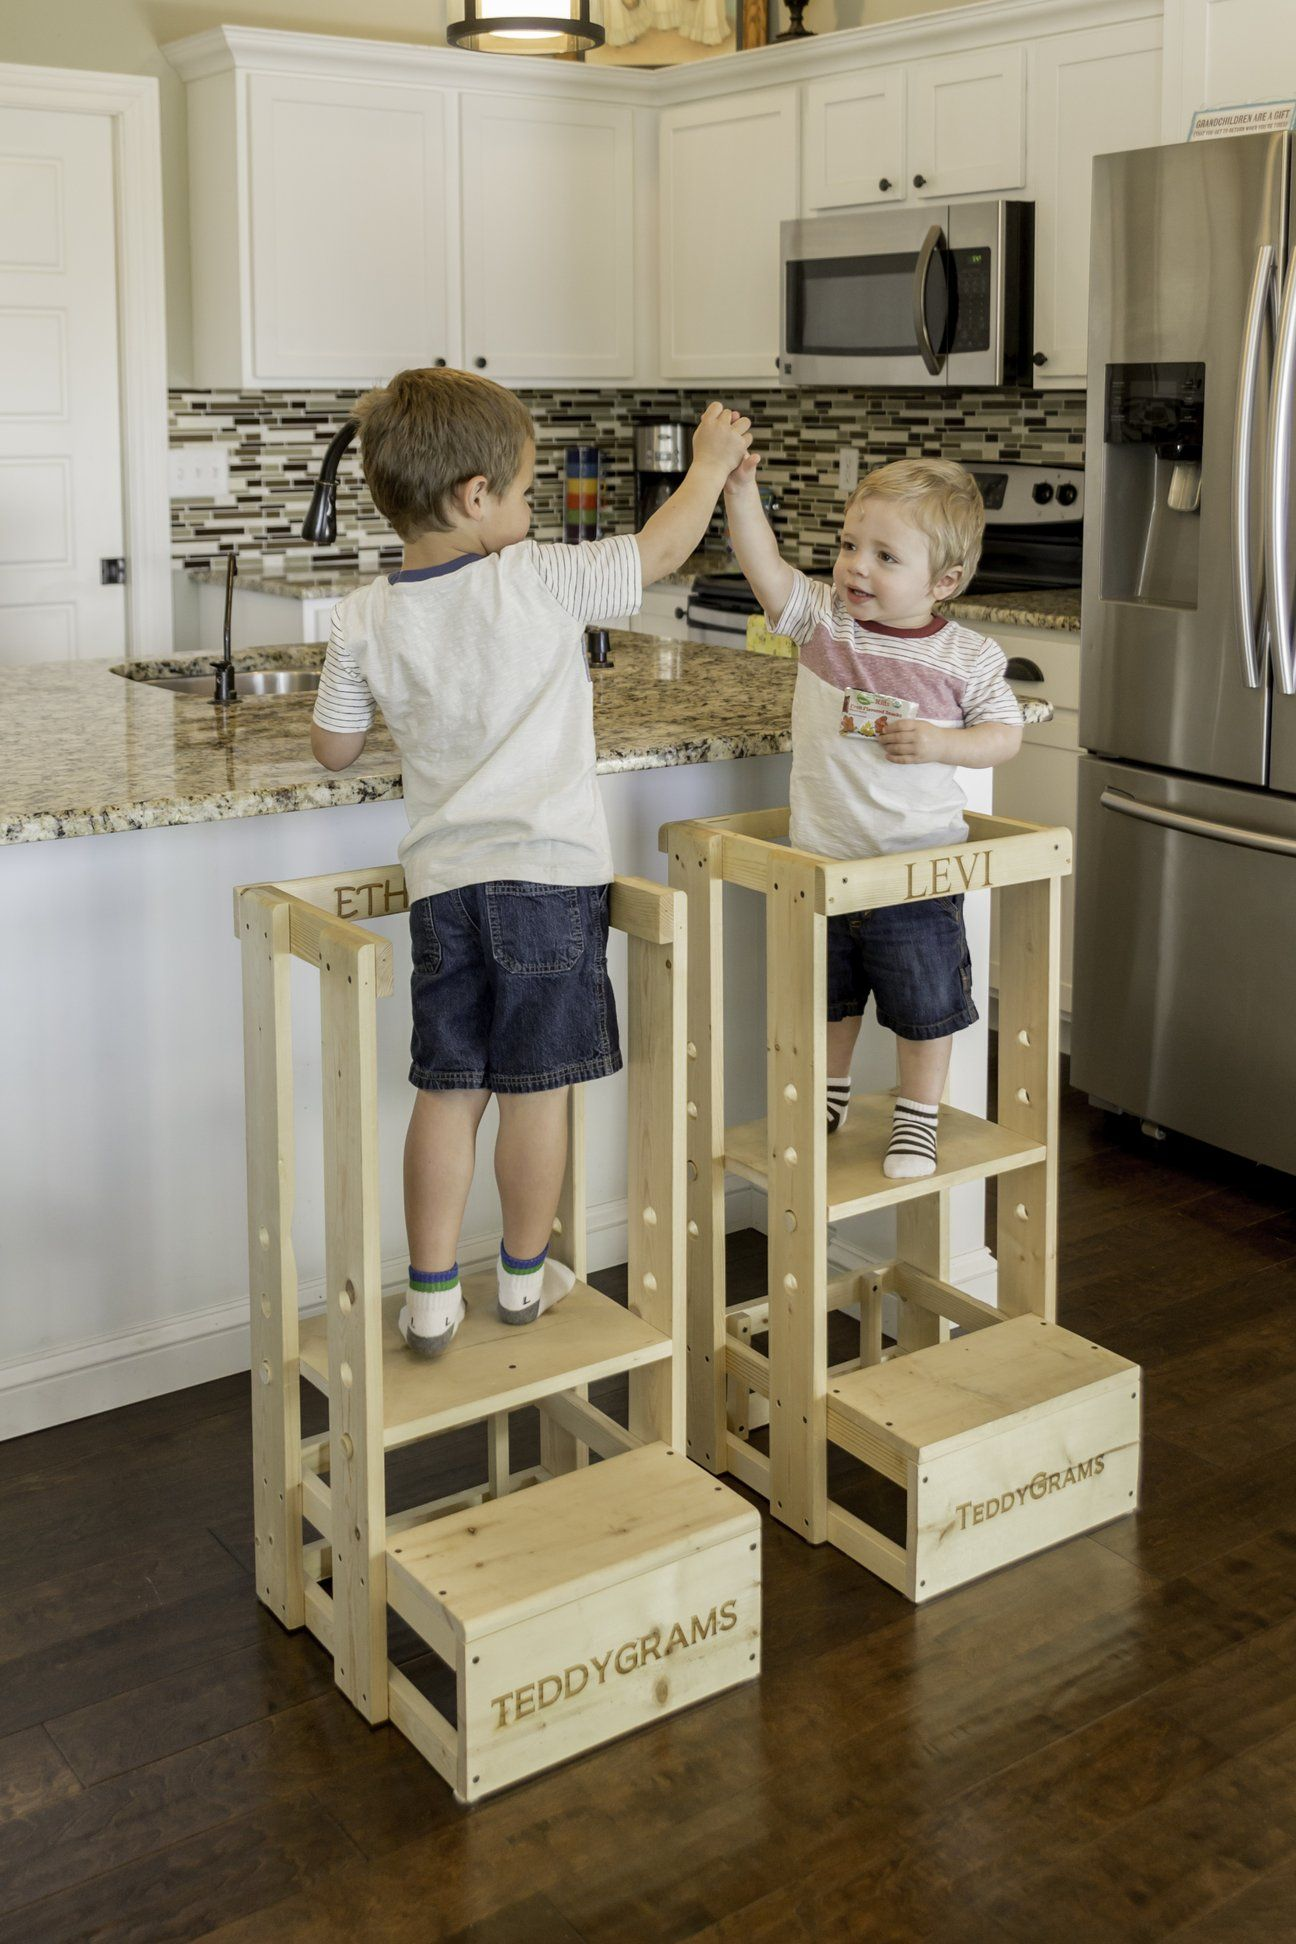 Tot Tower Safe Step Stool Mommy S Helper Learning Center Toddler Safety Stool Kitchen Step Stool Tkp Toddler Step Stool Kitchen Stools Diy Kids Kitchen